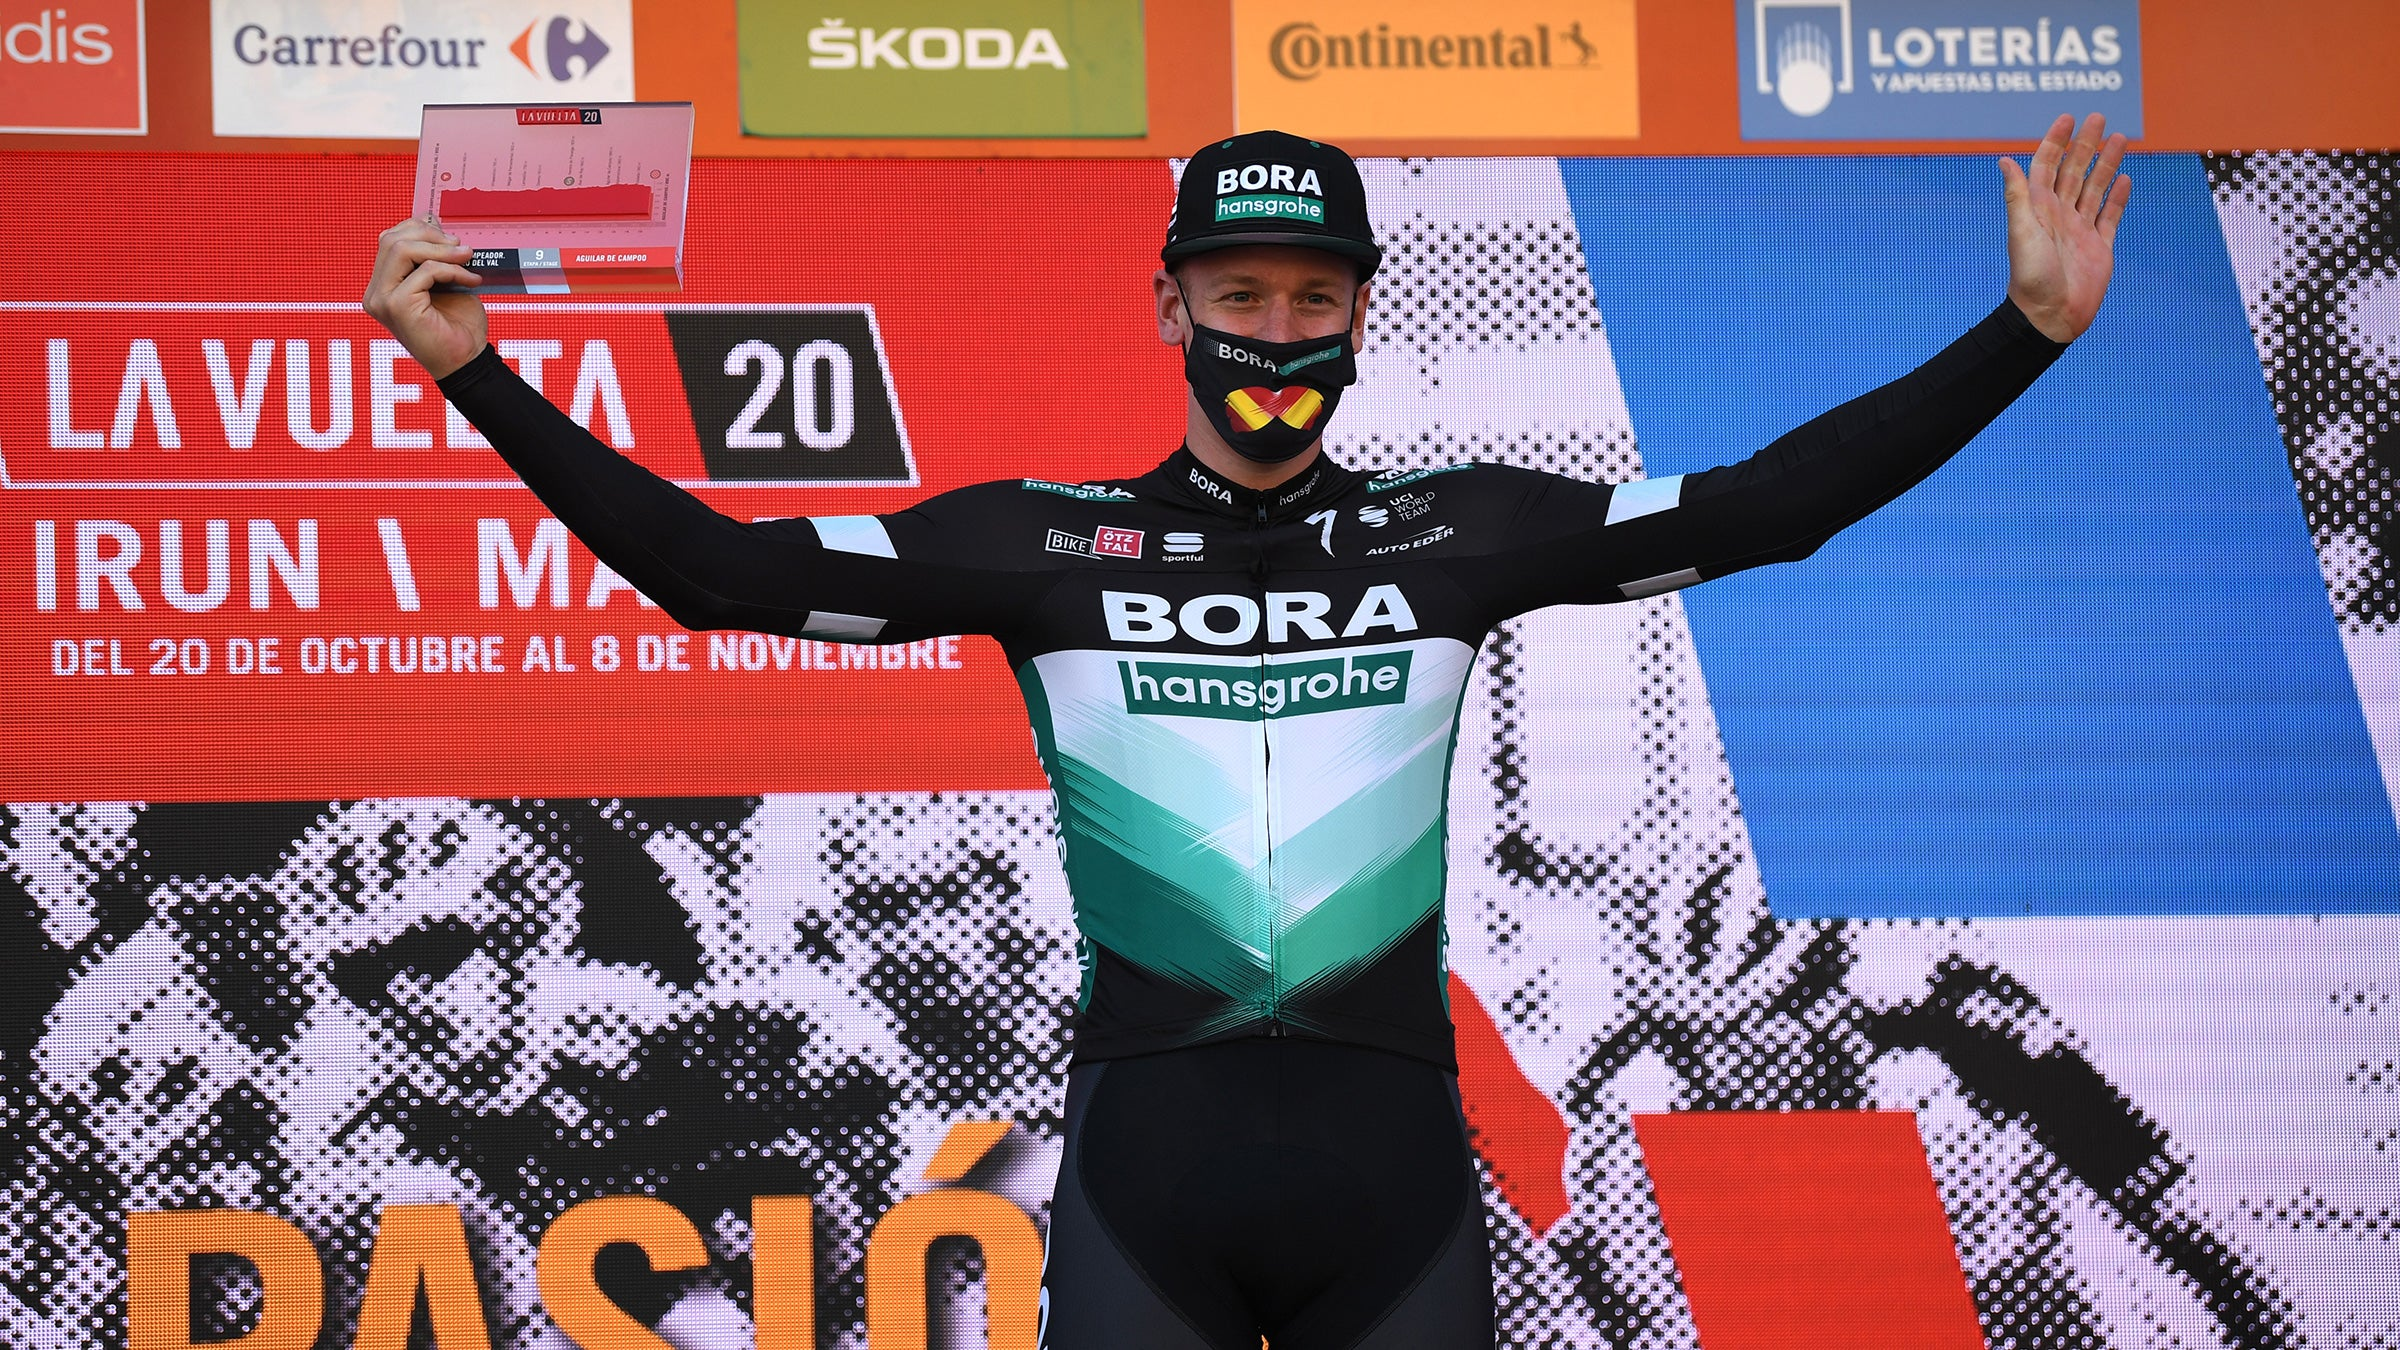 Pascal Ackermann was awarded the victory on stage 9 of the 2020 Vuelta a España